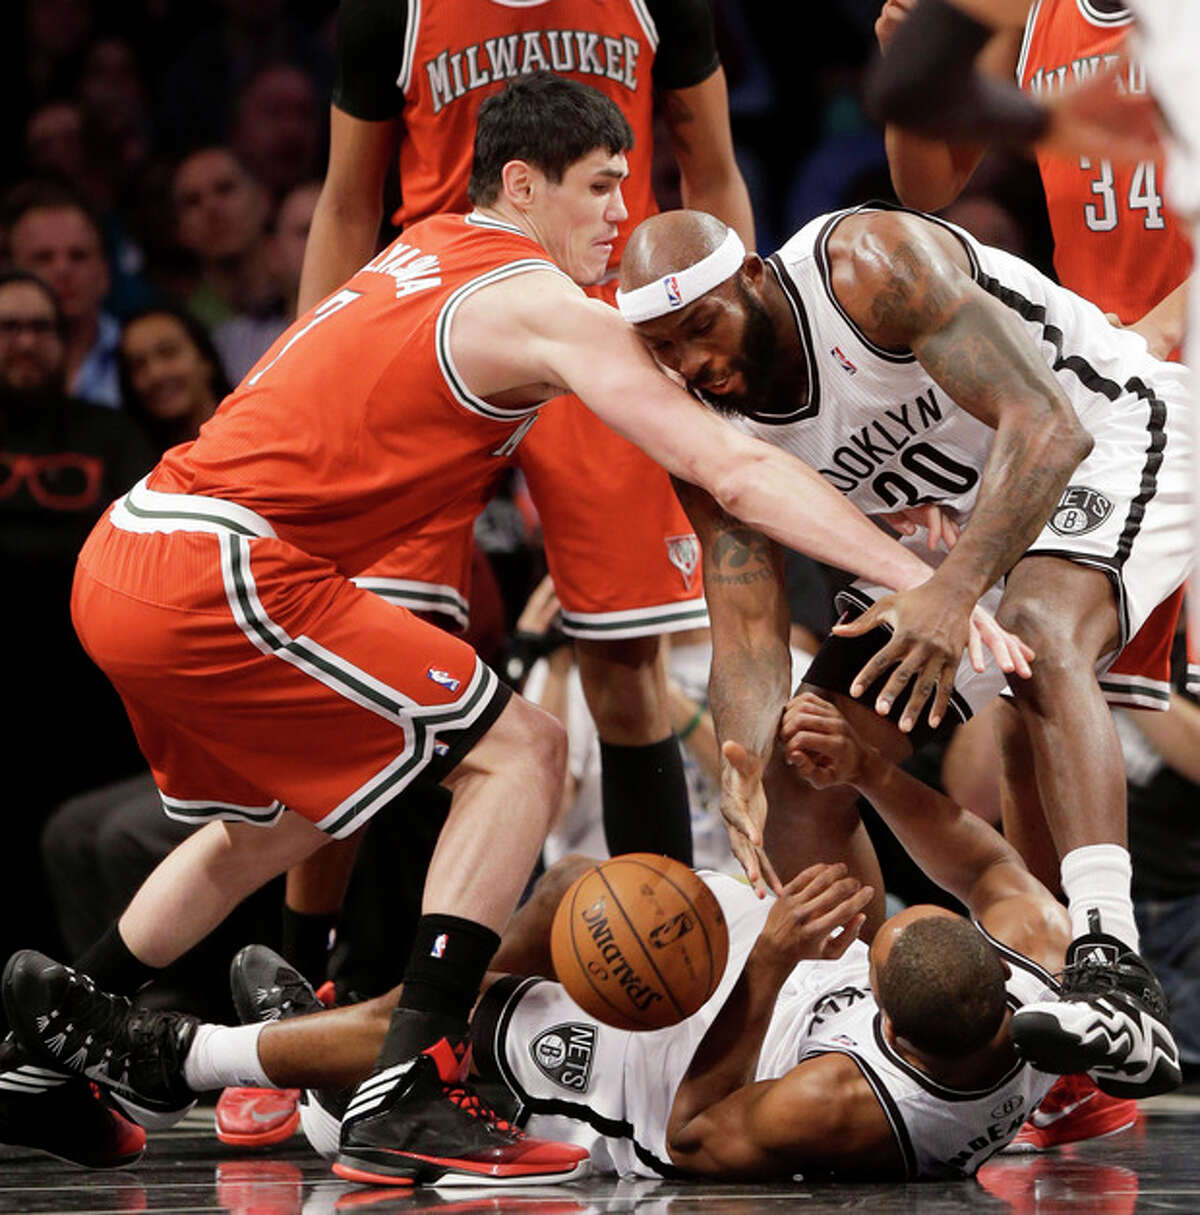 Milwaukee Bucks' Ersan Ilyasova, left, fights for a rebound with Brooklyn Nets' Reggie Evans, right, and Alan Anderson, bottom, during the first half of an NBA basketball game at the Barclays Center, Friday, Dec. 27, 2013, in New York. (AP Photo/Seth Wenig)